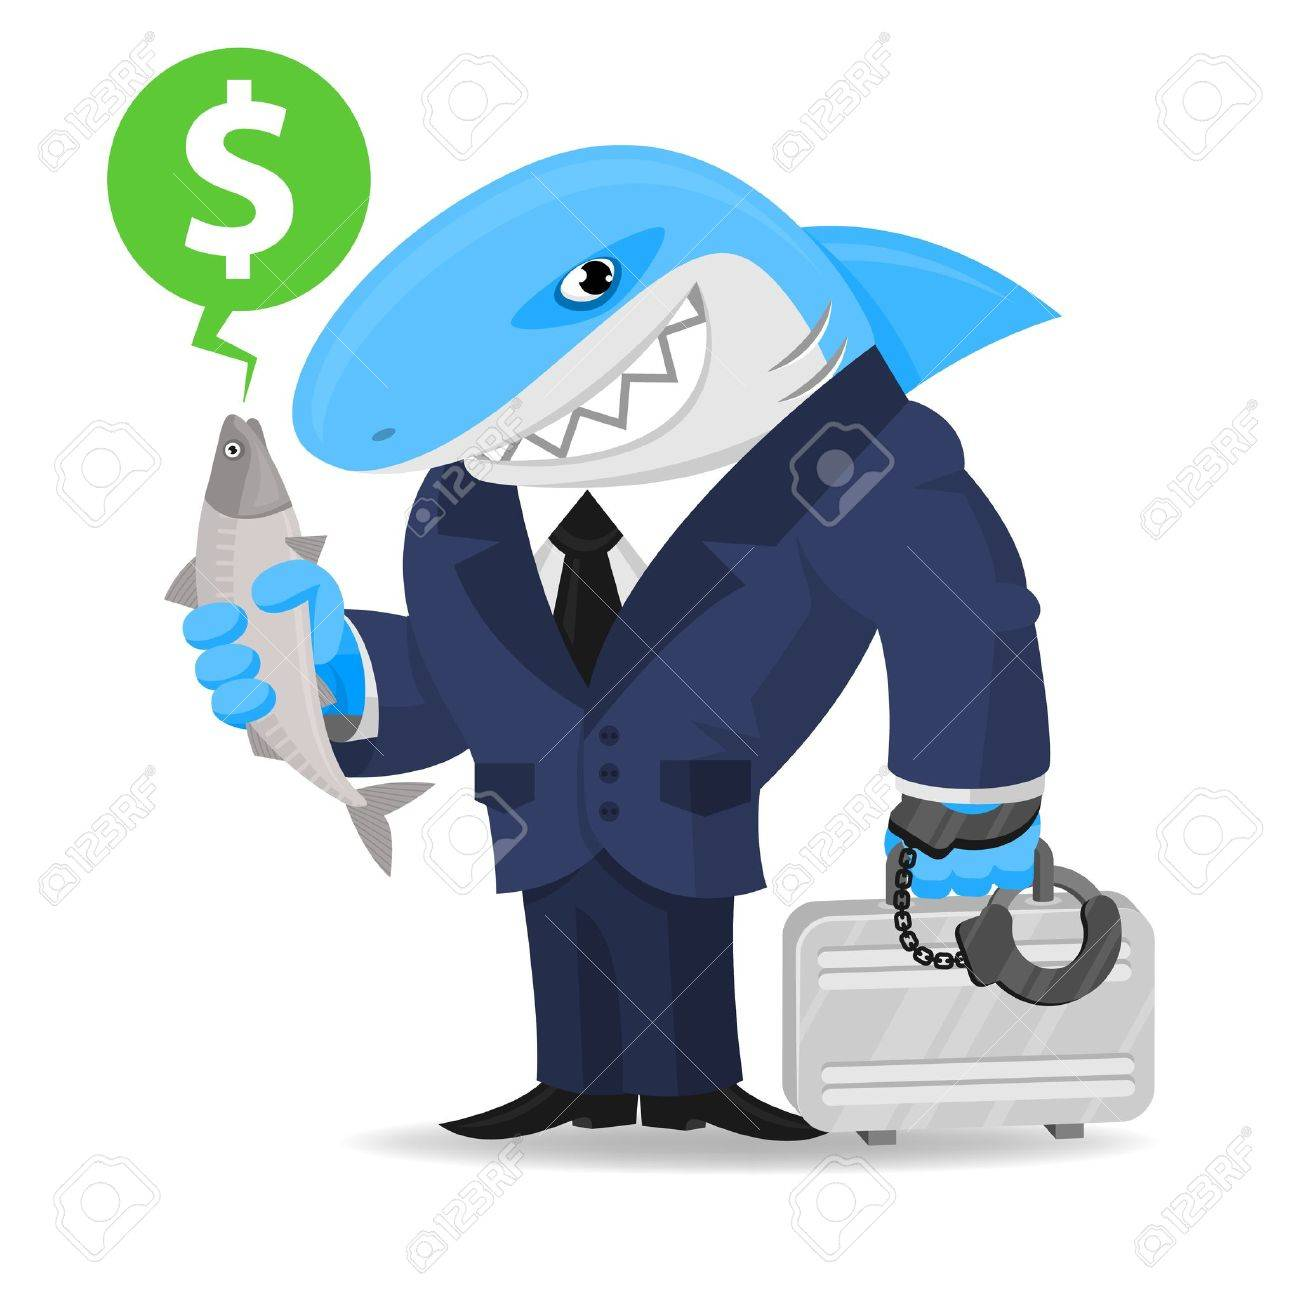 Shark business keeps suitcase and fish Stock Vector - 19156807